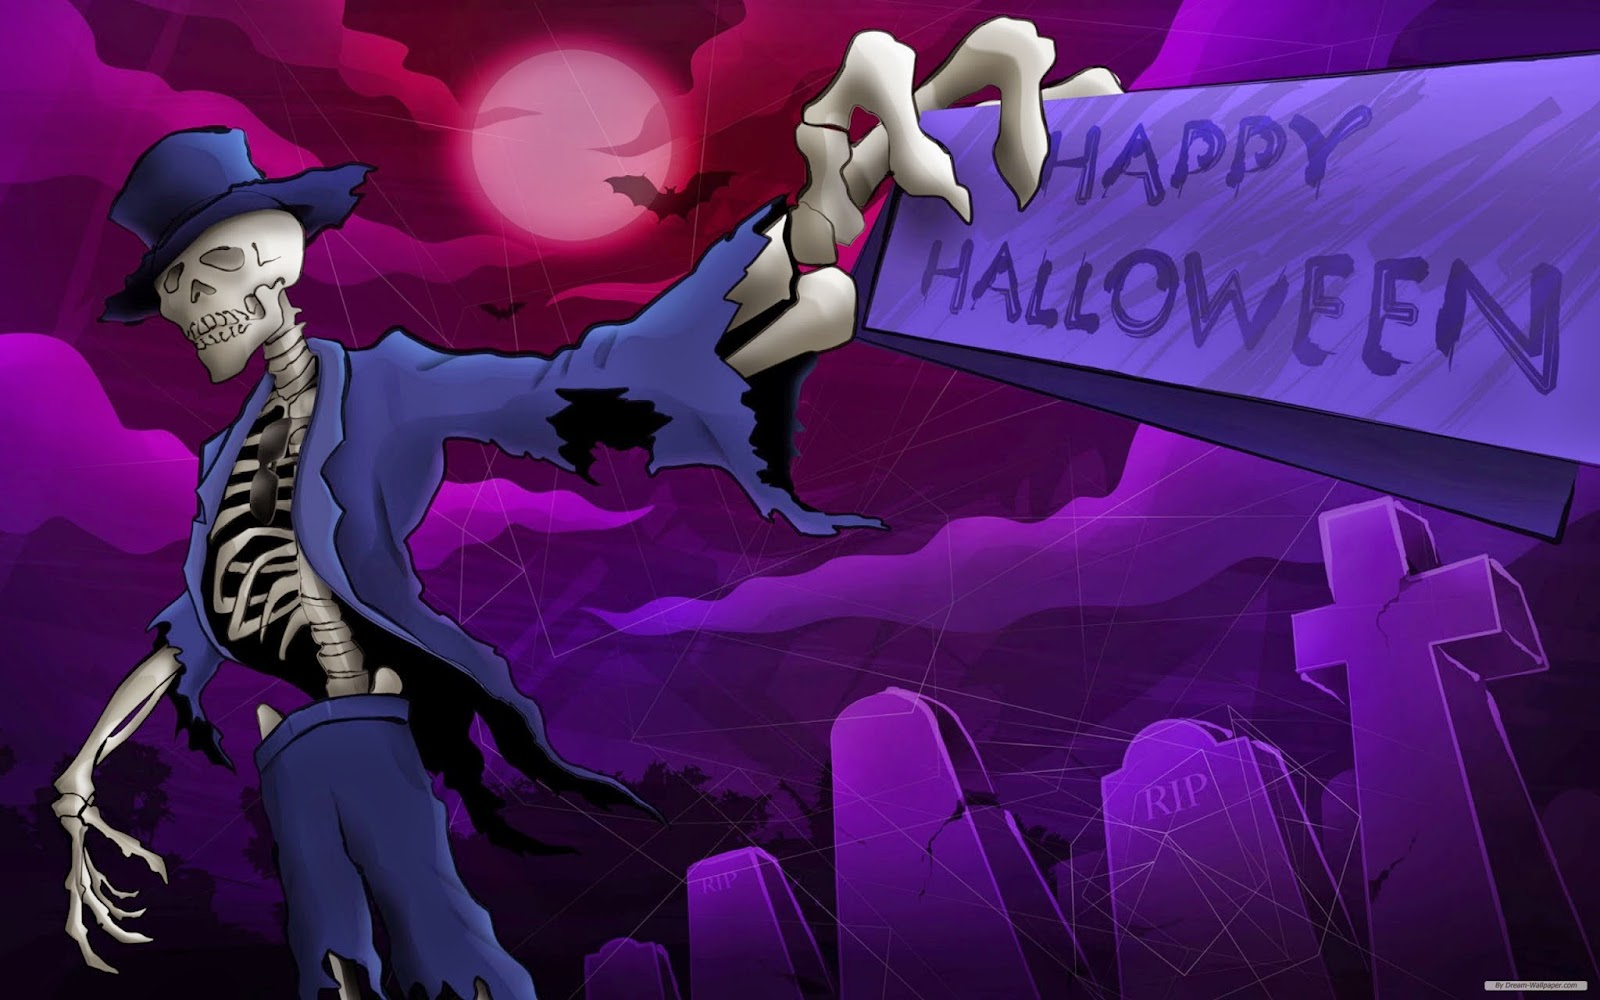 Happy-halloween-text-board-skeleton-head-cartoon-image.jpg